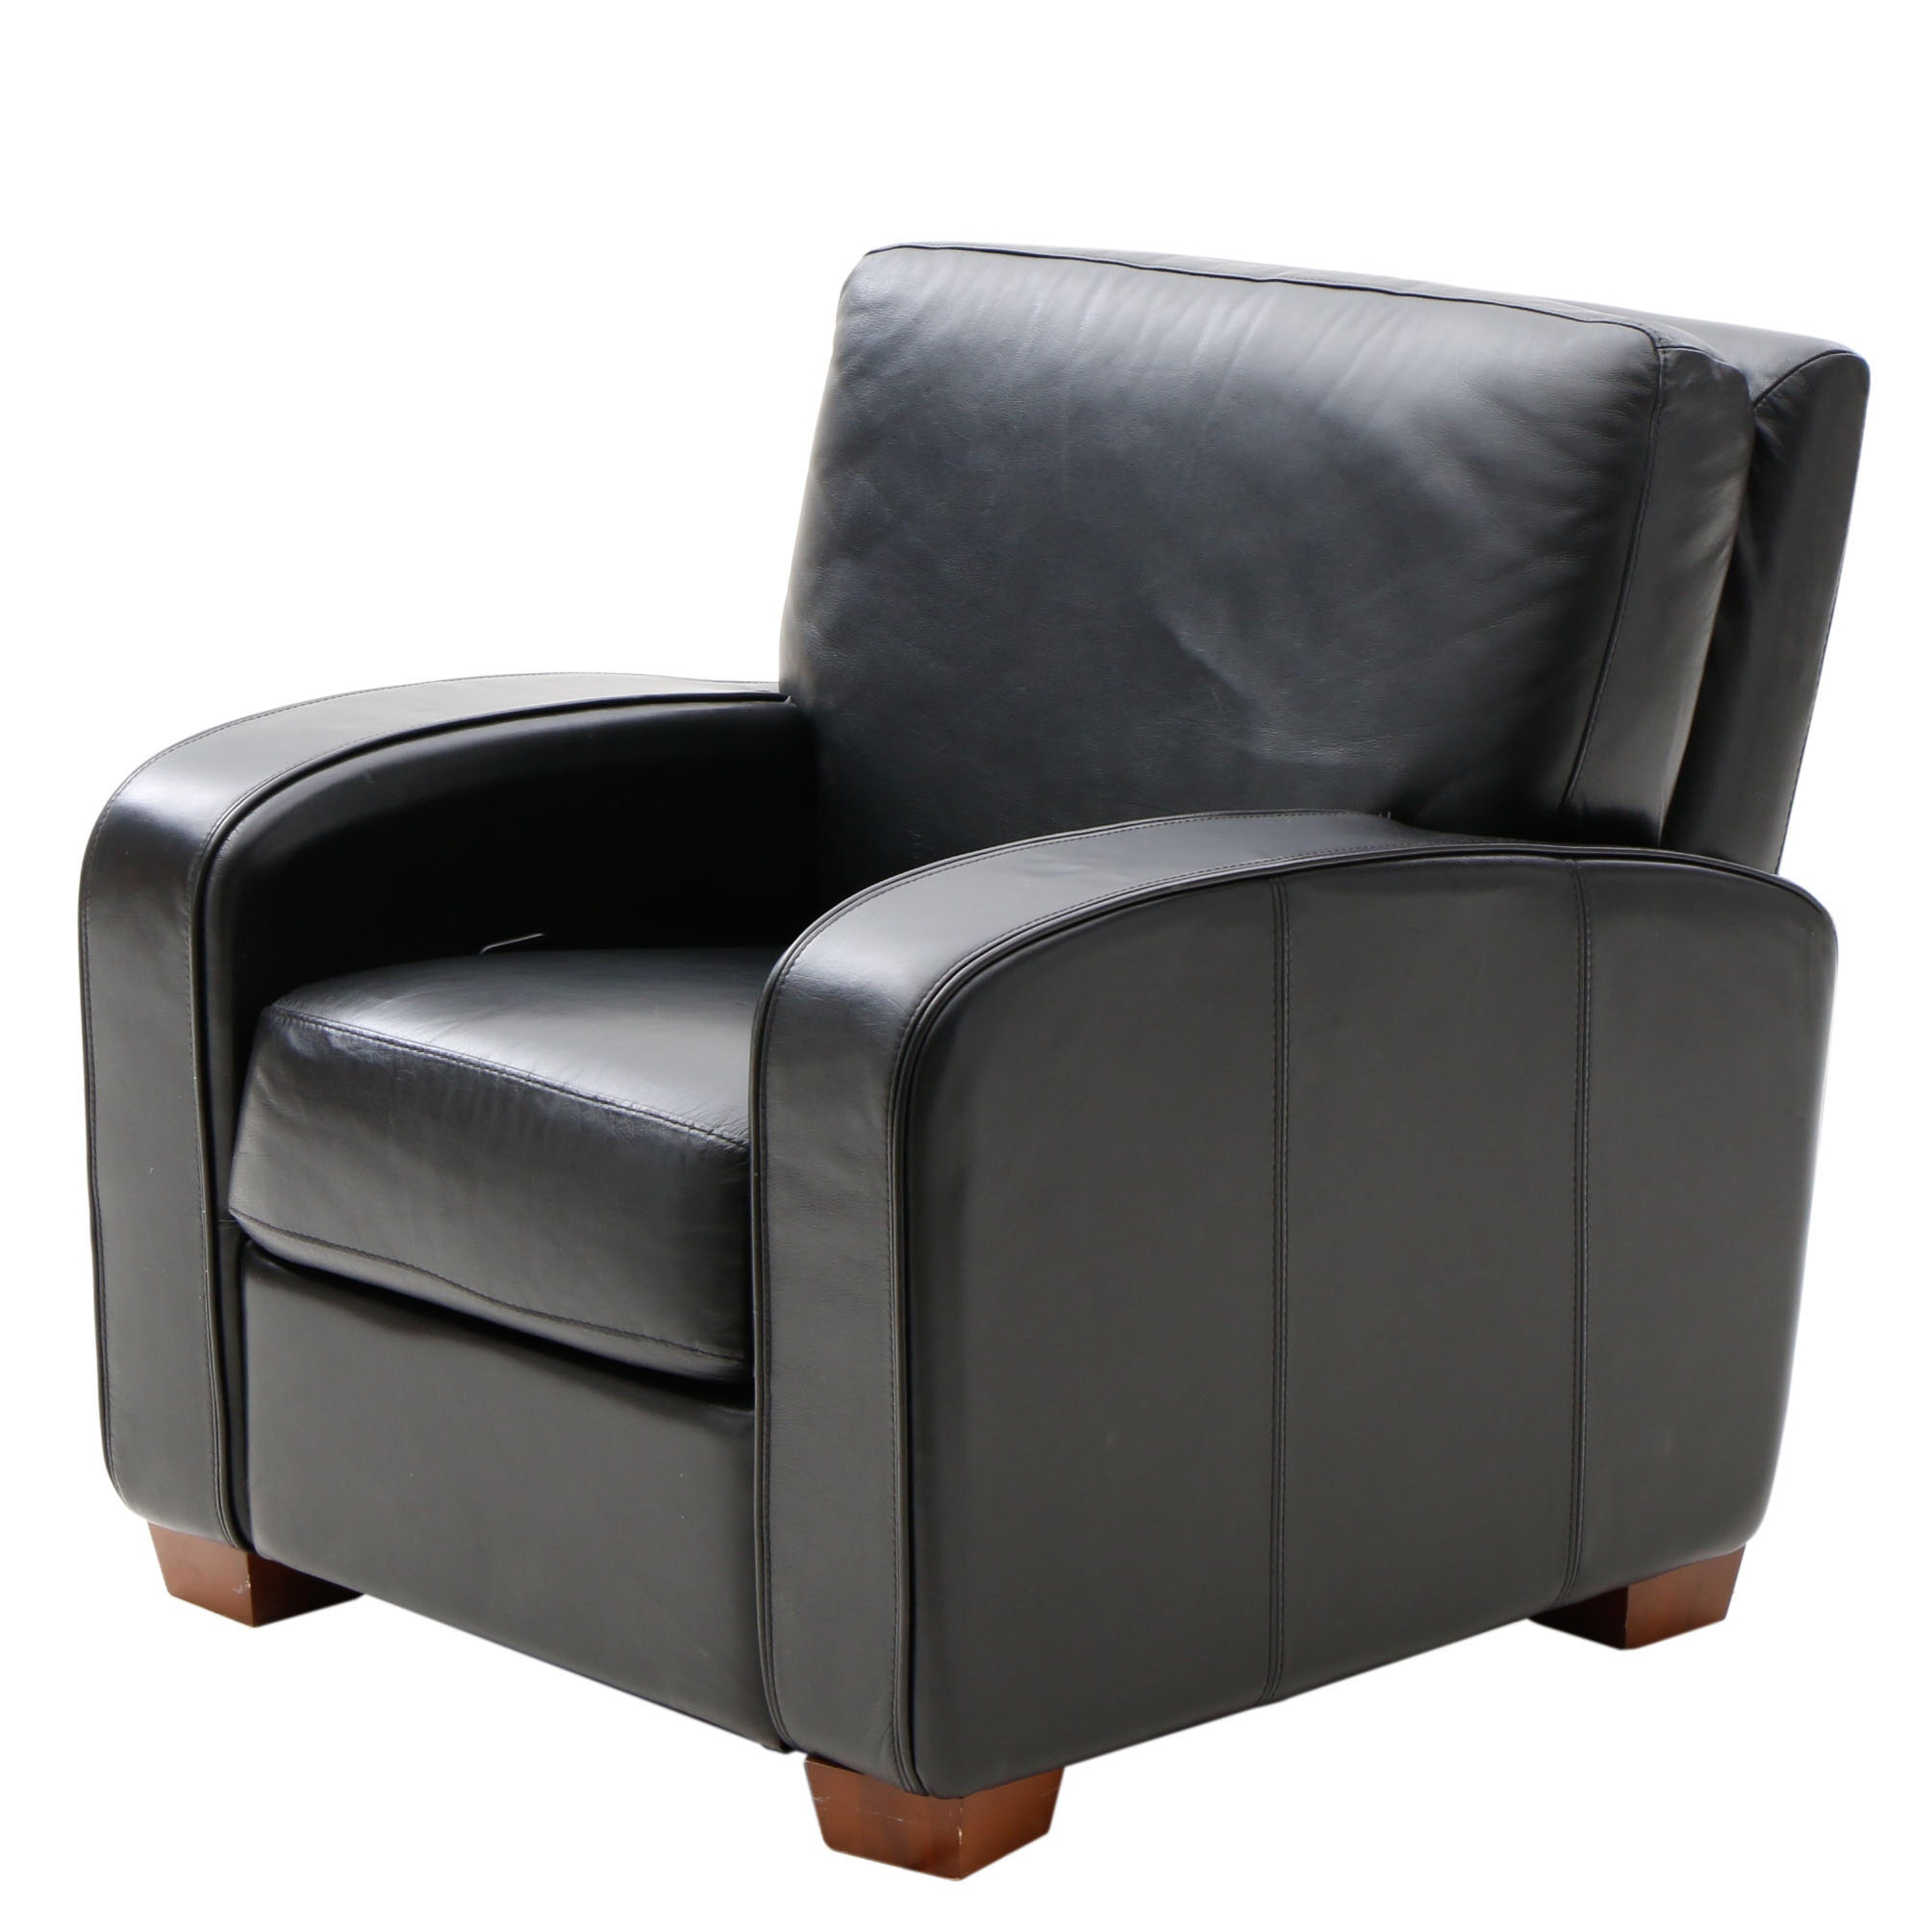 Black Leather Recliner